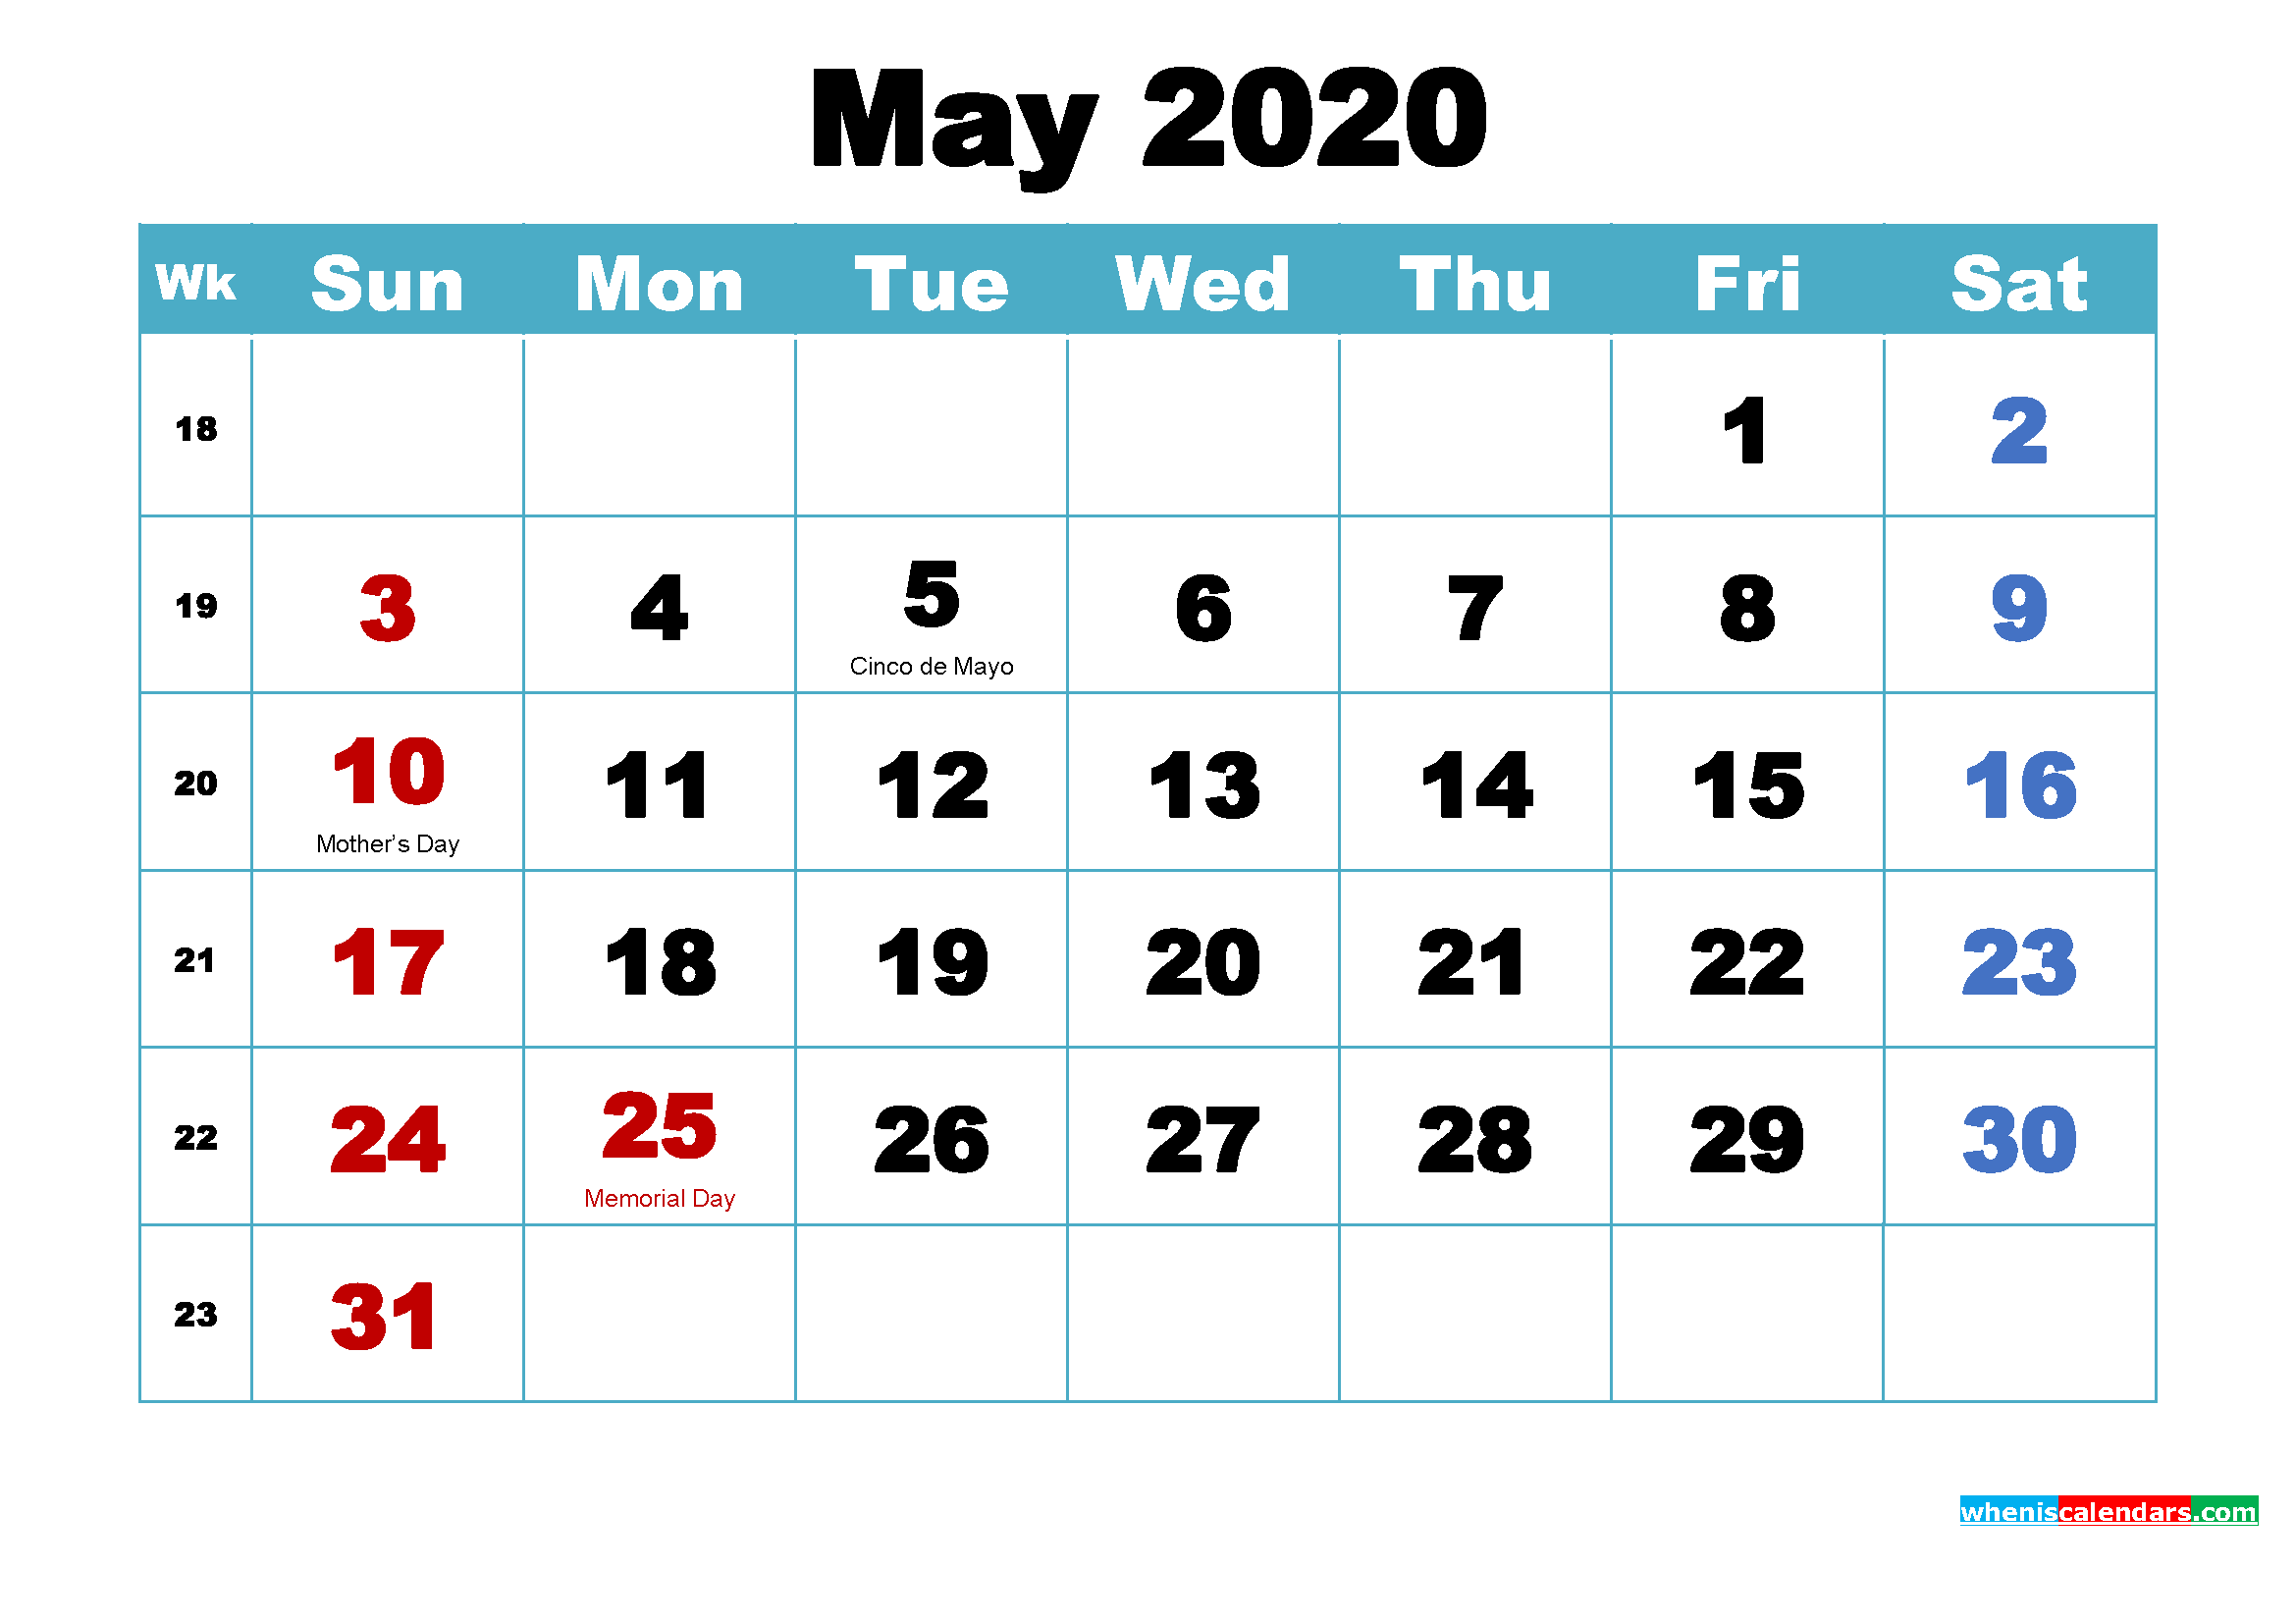 Printable May 2020 Calendar by Month